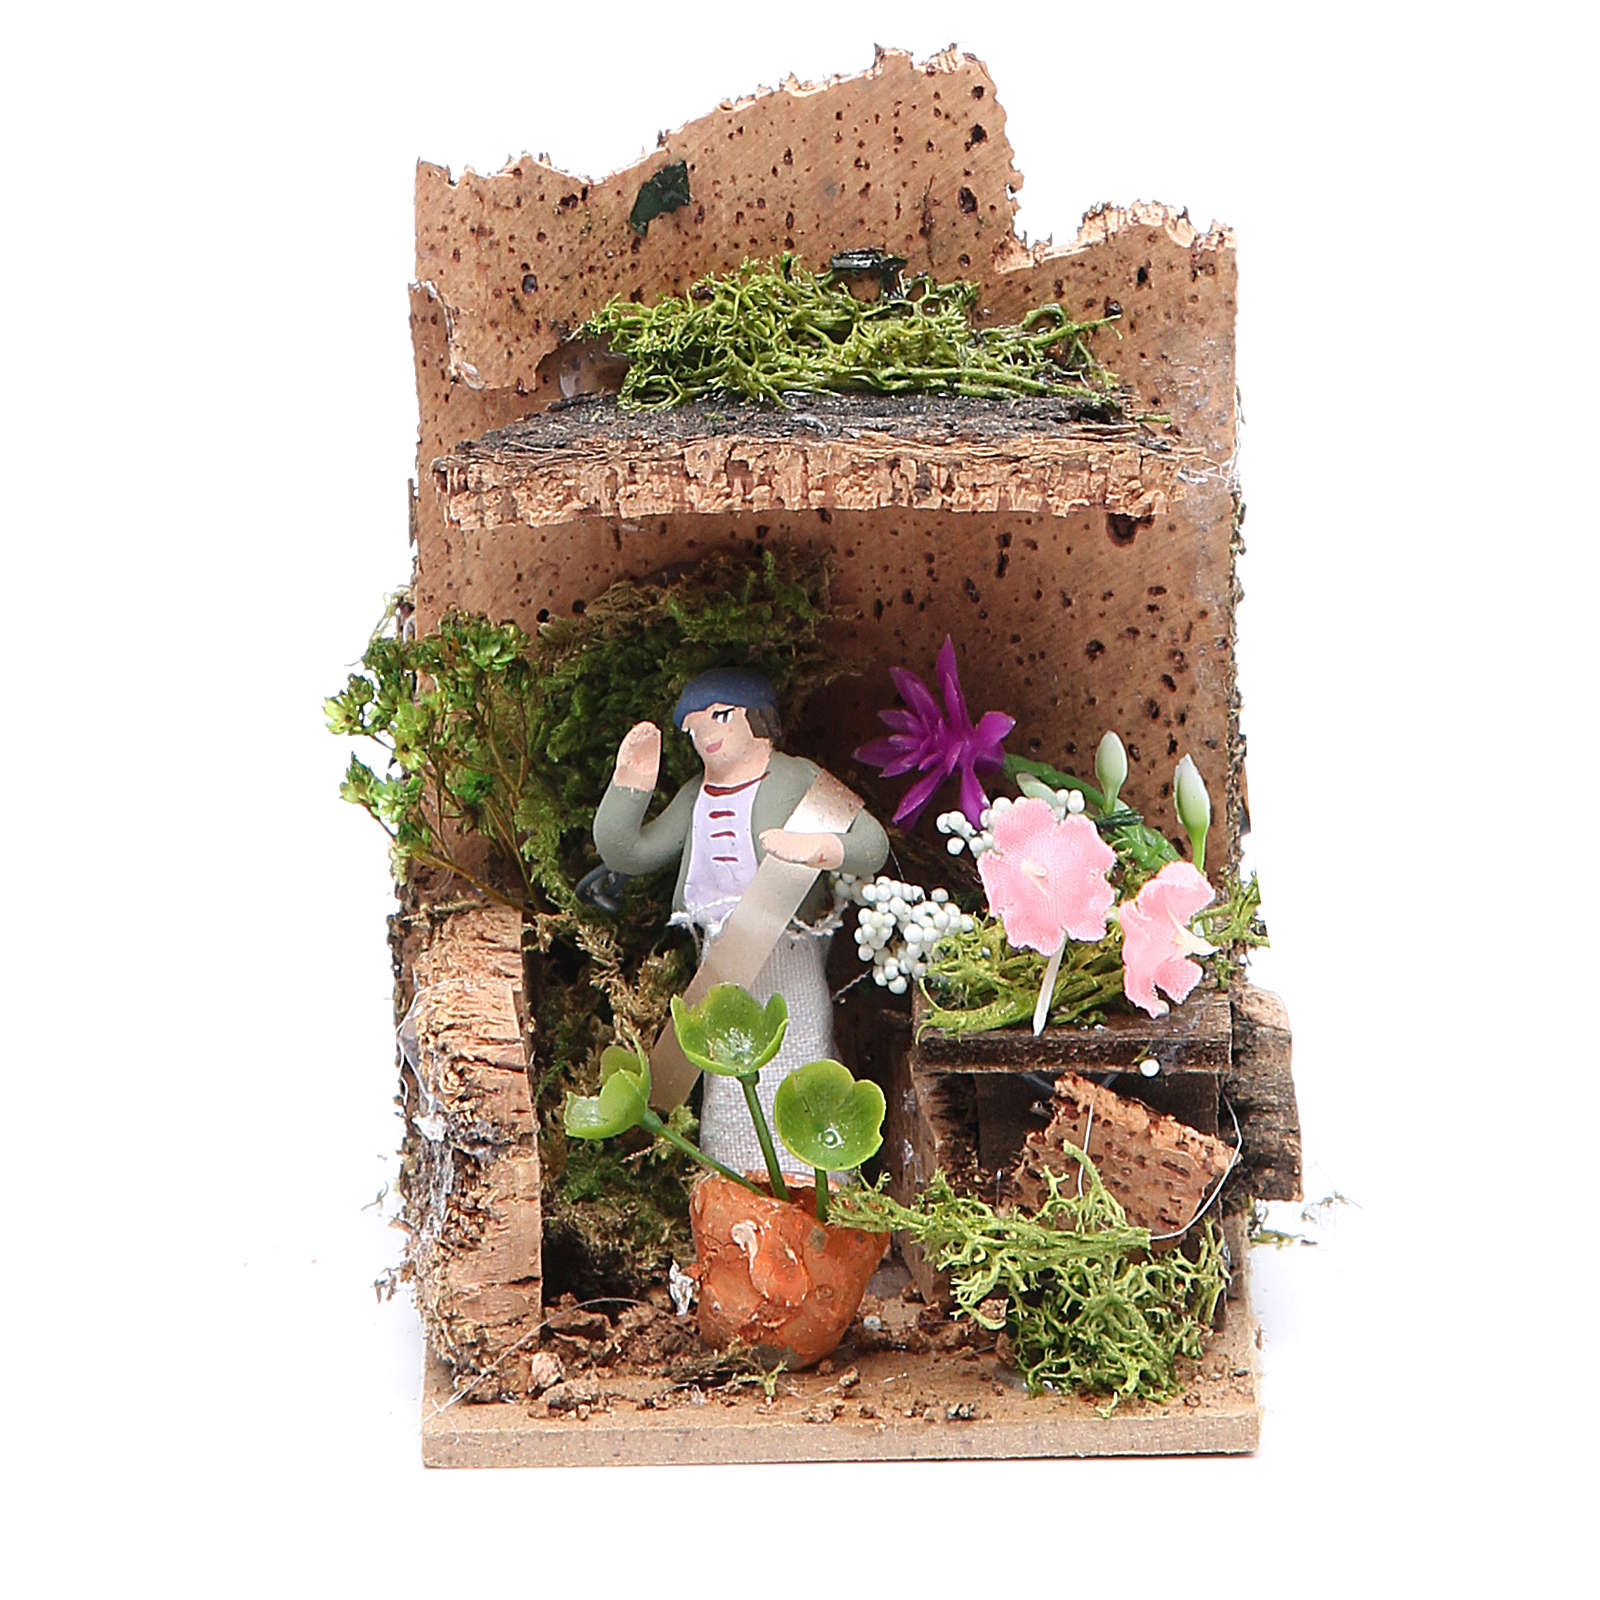 Florist measuring 4cm, animated nativity figurine 3